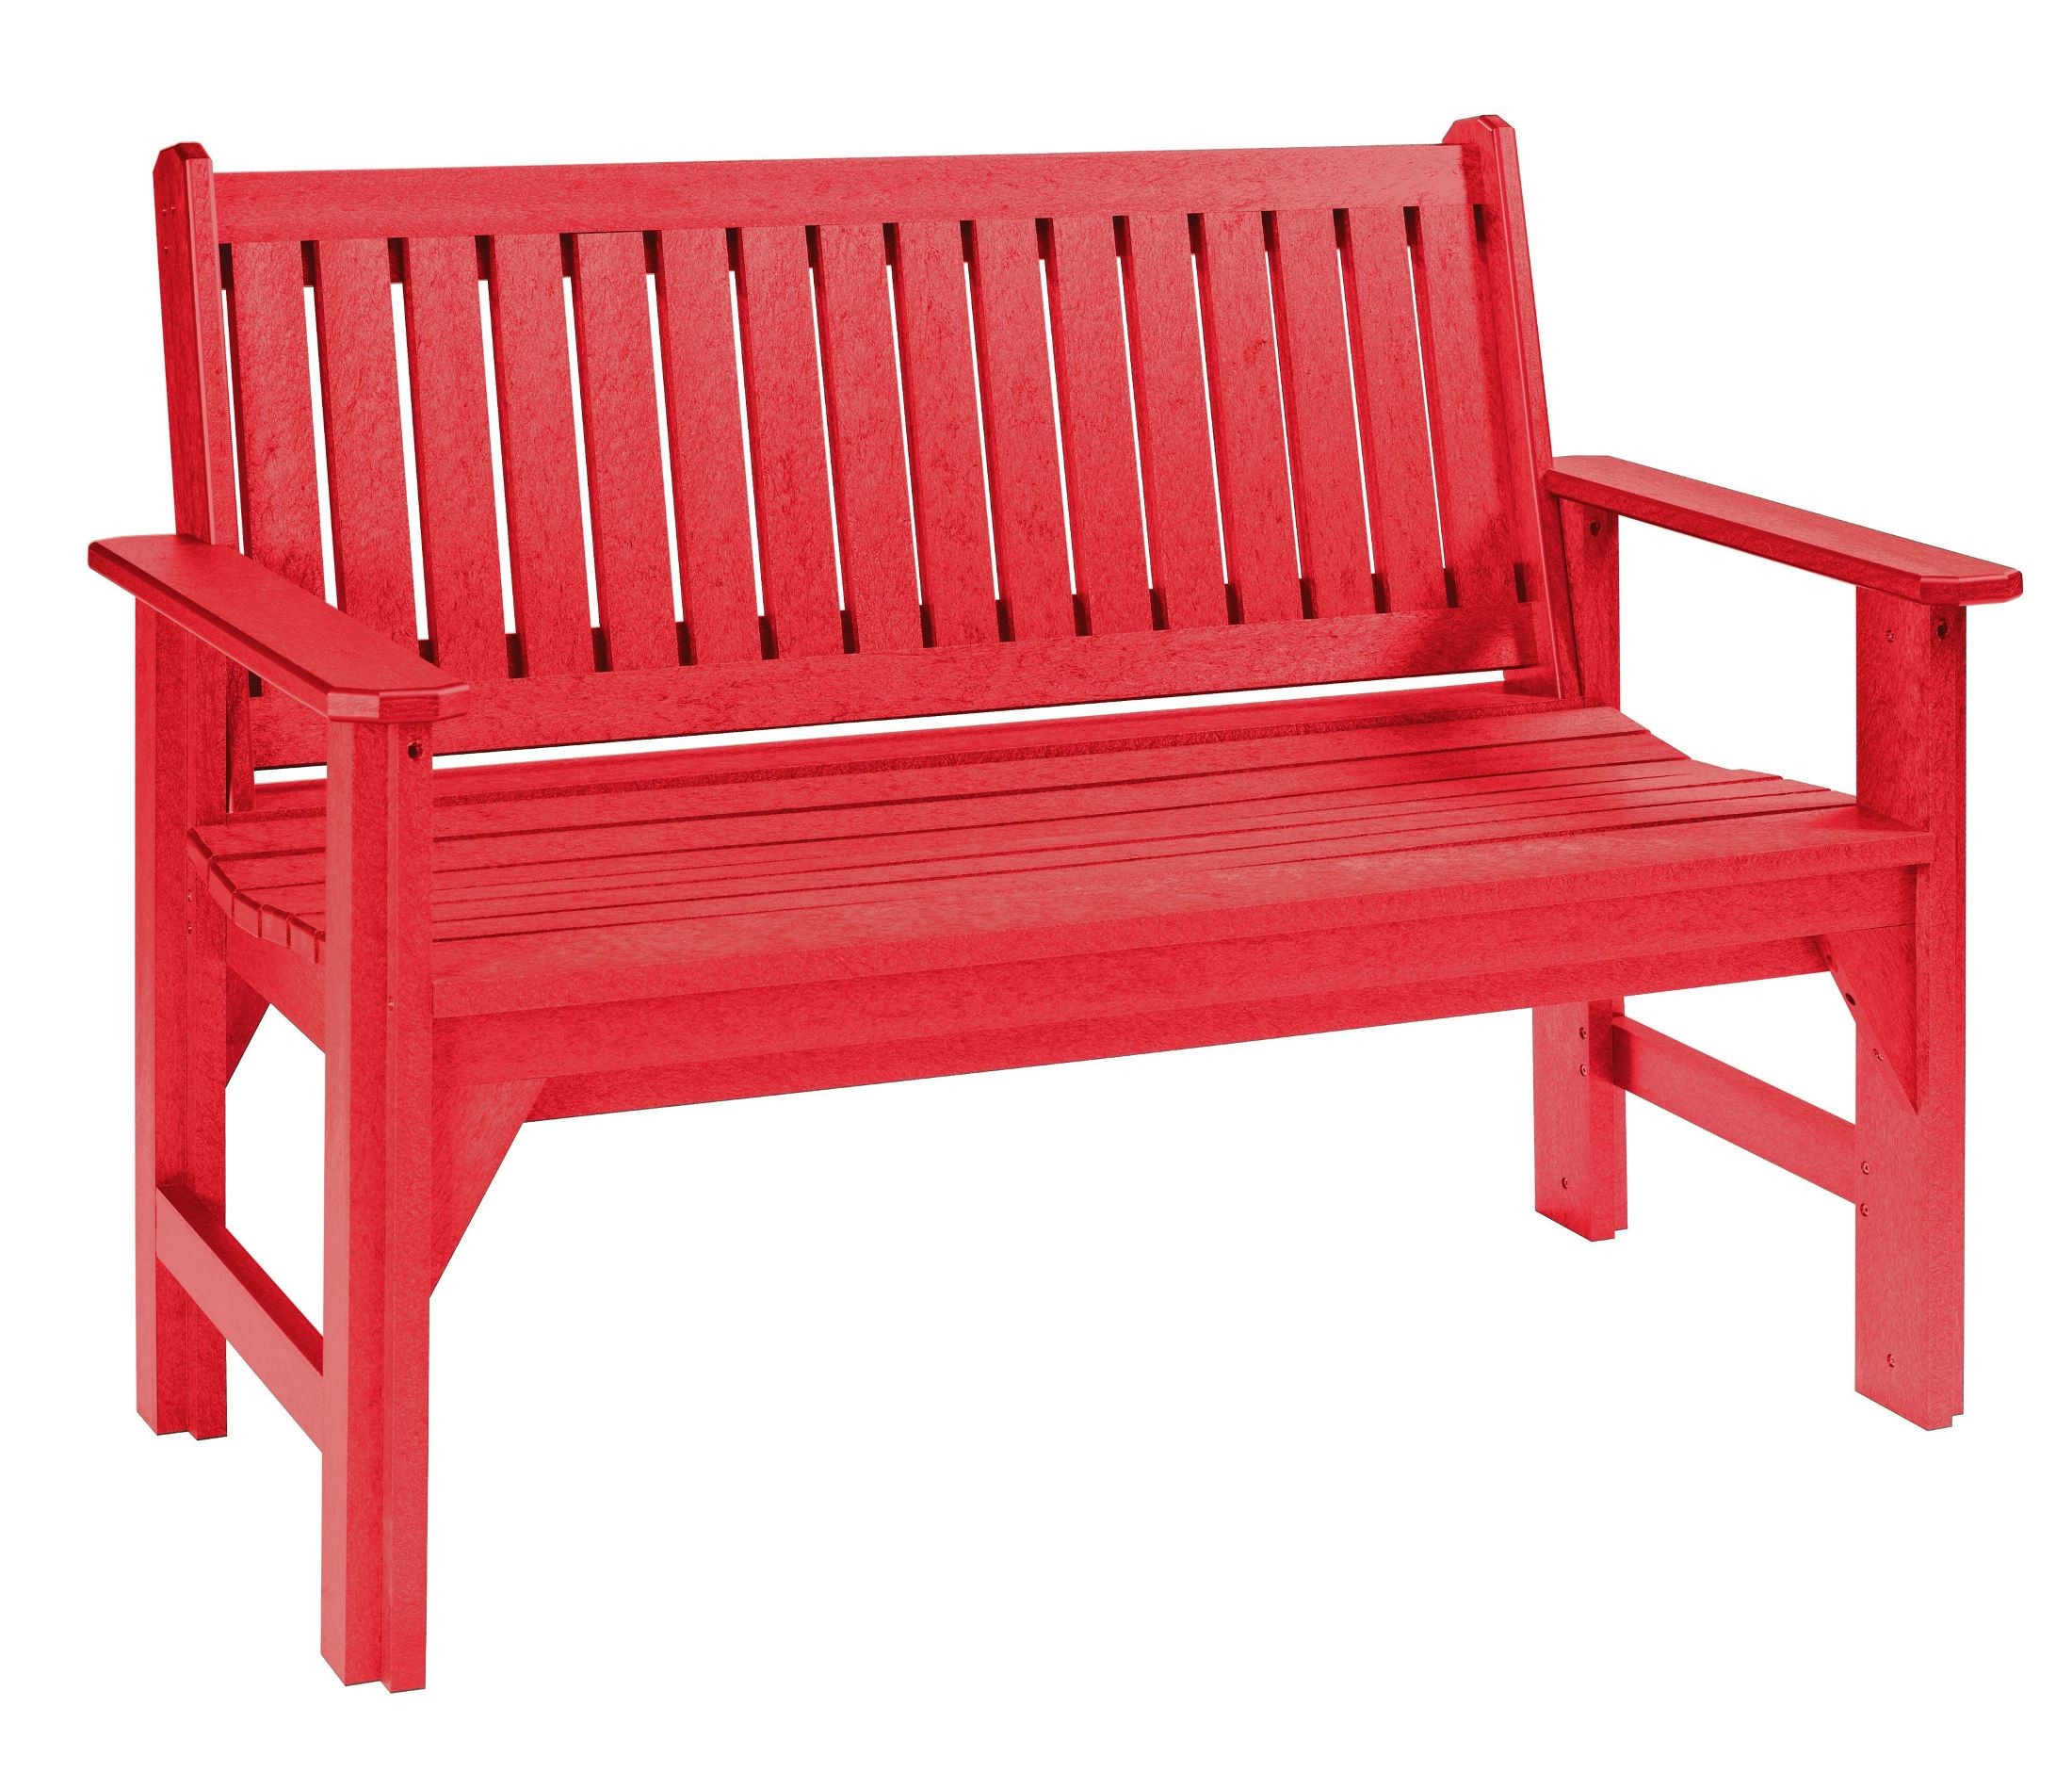 Generations Red Garden Bench From Cr Plastic B01 01 Coleman Furniture